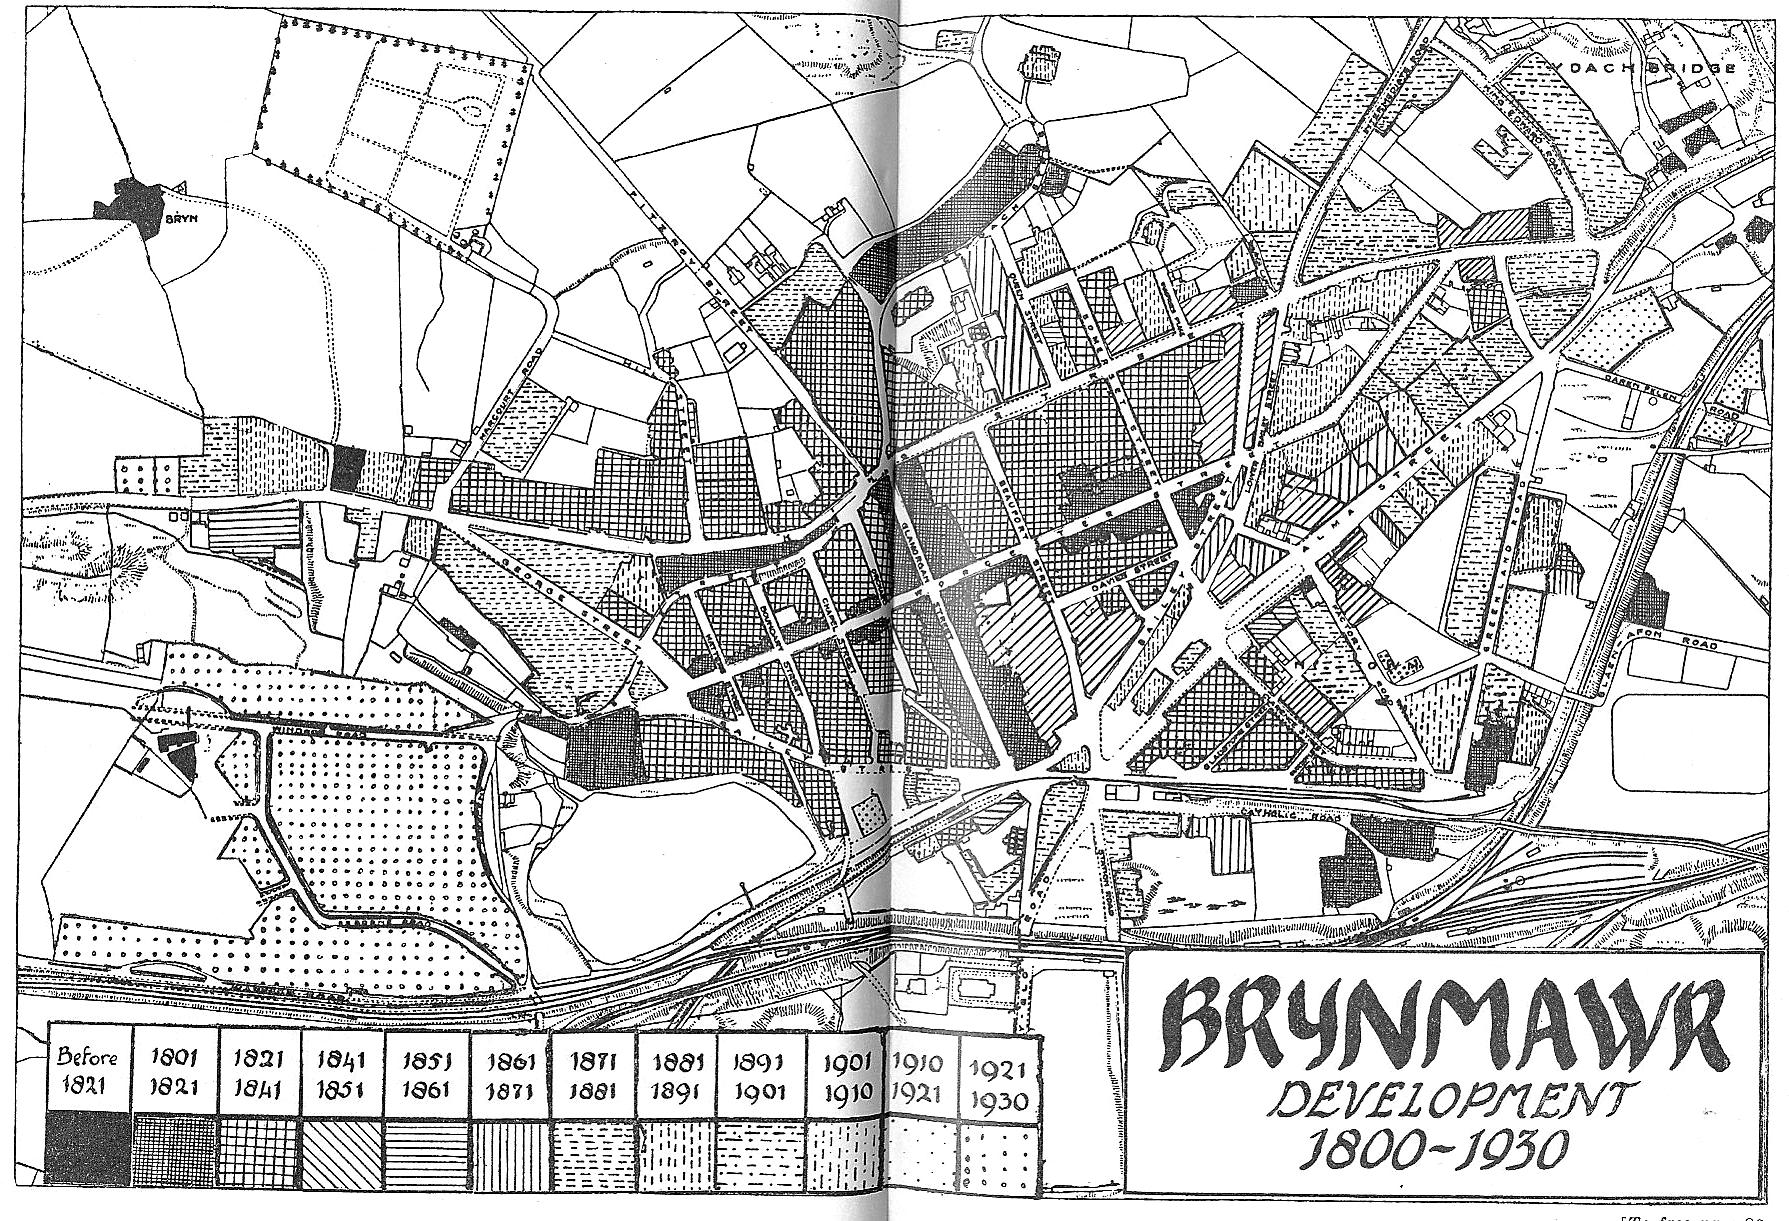 The Brynmawr Wales History Genealogy Project